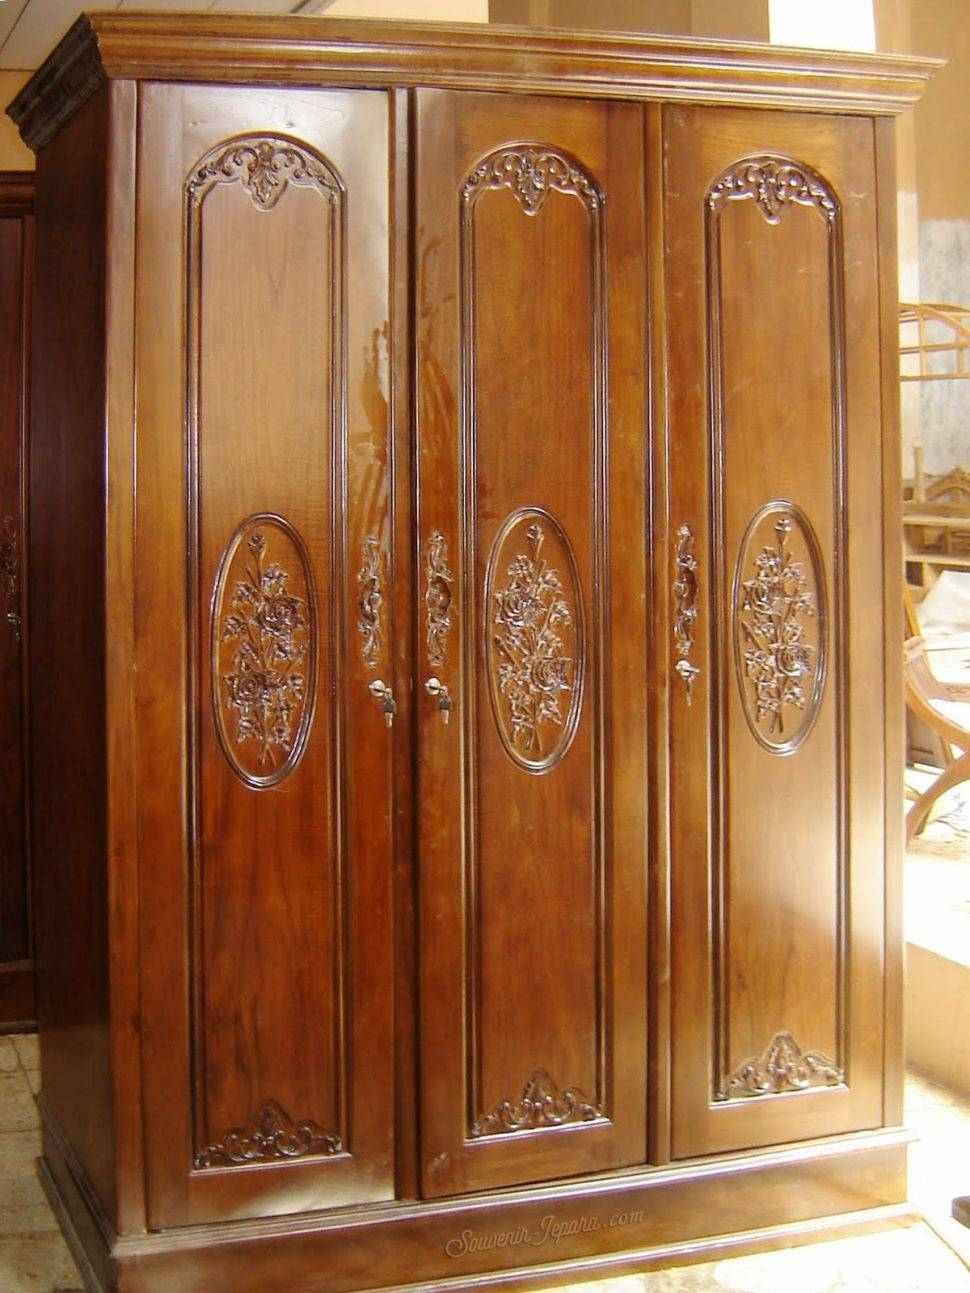 Bedroom Furniture : Gentleman's Wardrobe Armoire Antique For Sale regarding French Wardrobes For Sale (Image 8 of 15)